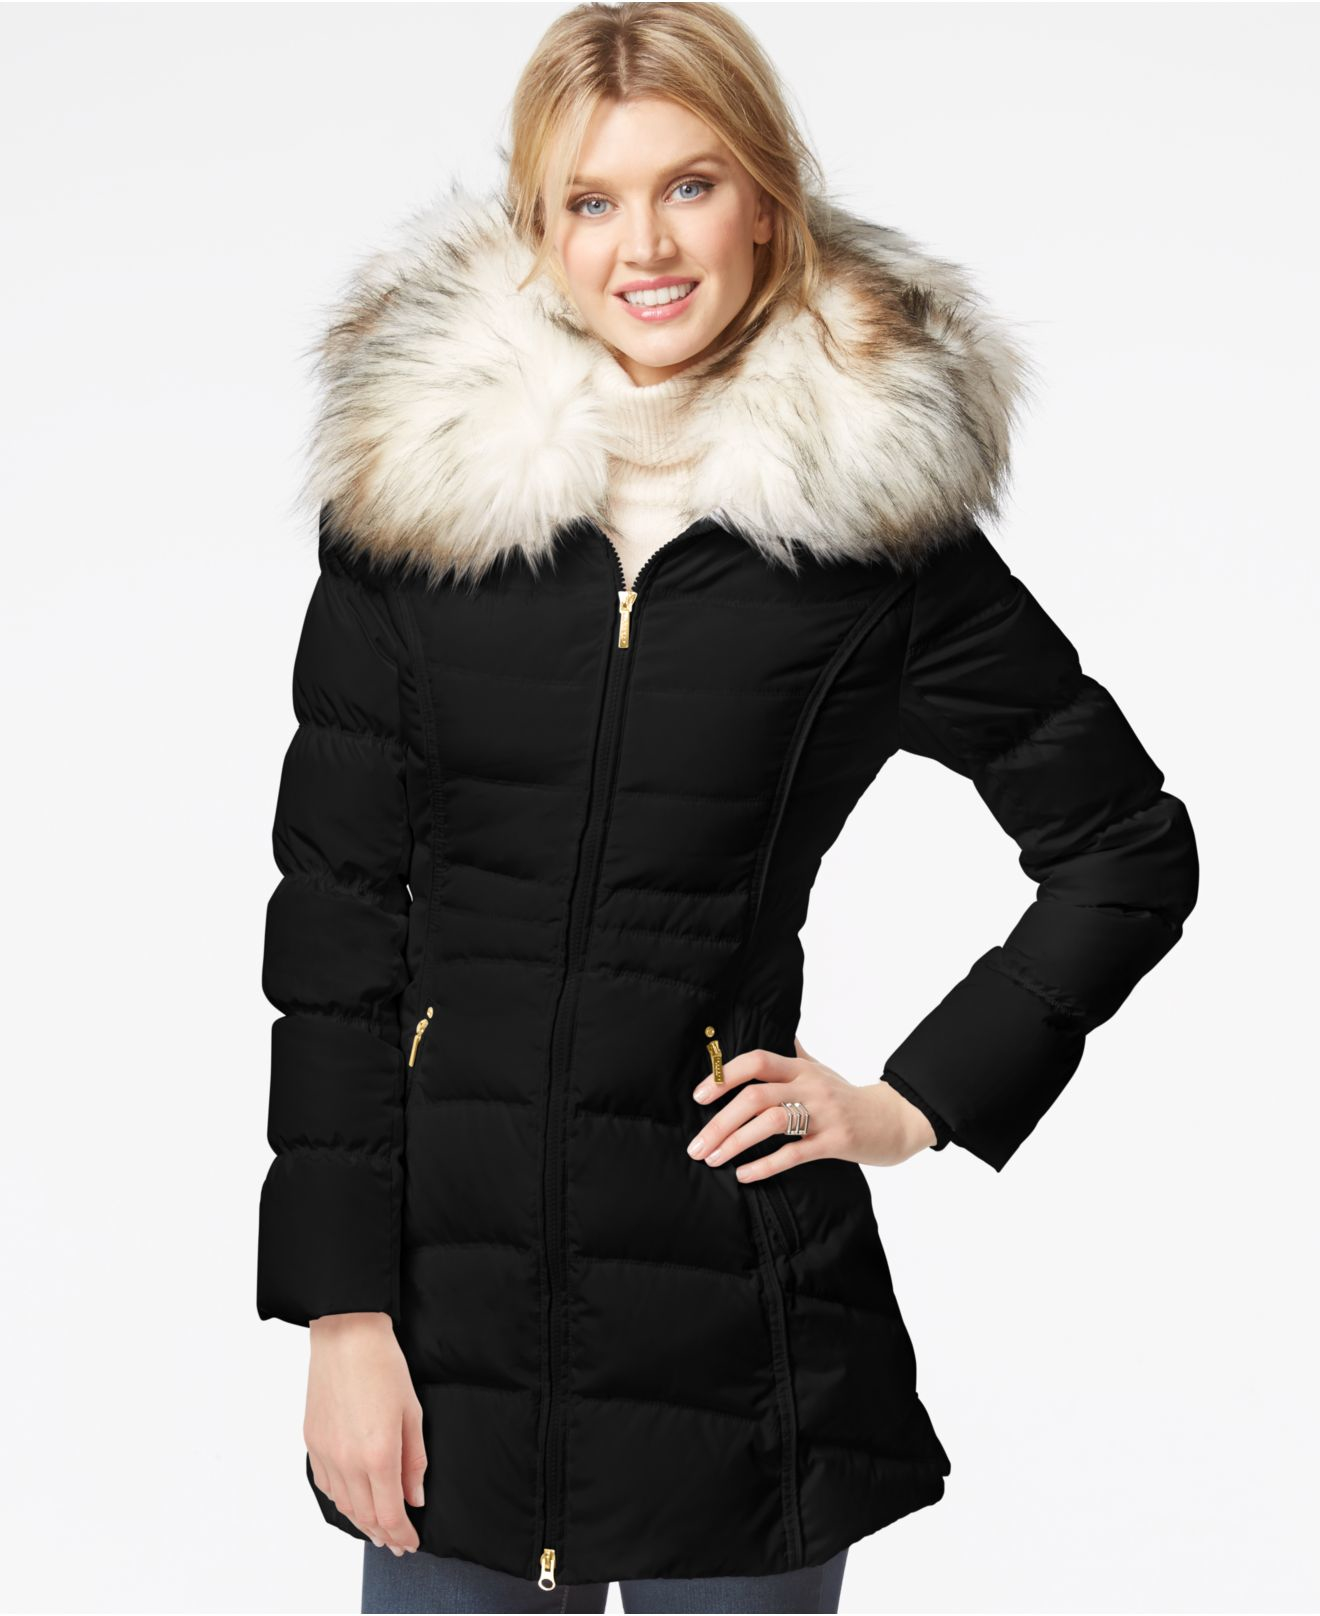 Shop the latest styles of Womens Hooded Puffer Coats at Macys. Check out our designer collection of chic coats including peacoats, trench coats, puffer coats and more! Macy's Presents: The Edit- A curated mix of fashion and inspiration Check It Out. I.N.C. Faux-Fur-Trim Hooded Puffer Coat, Created for Macy's.